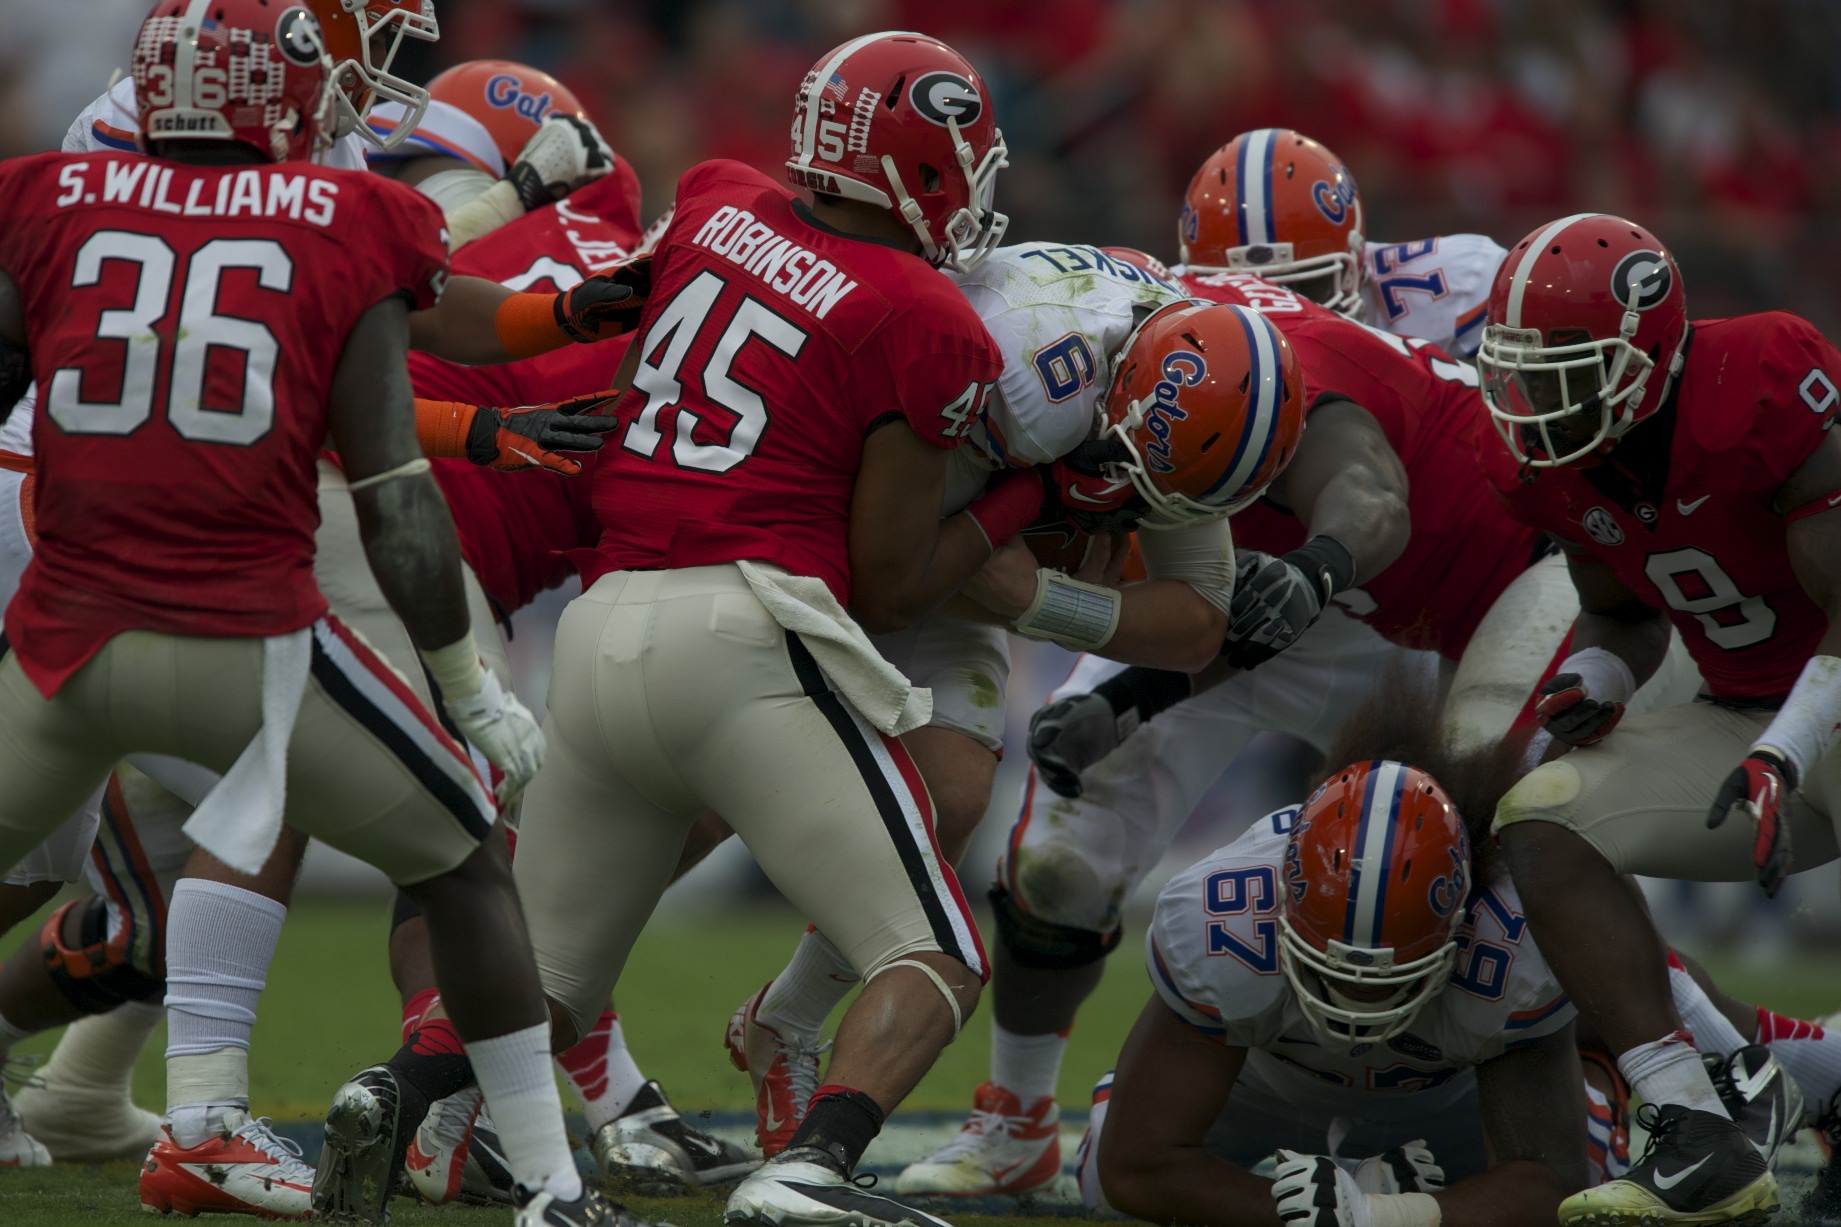 Florida's quarterback Jeff Driskel is taken down by Georgia's defense after a gain of yards in Saturday's game.